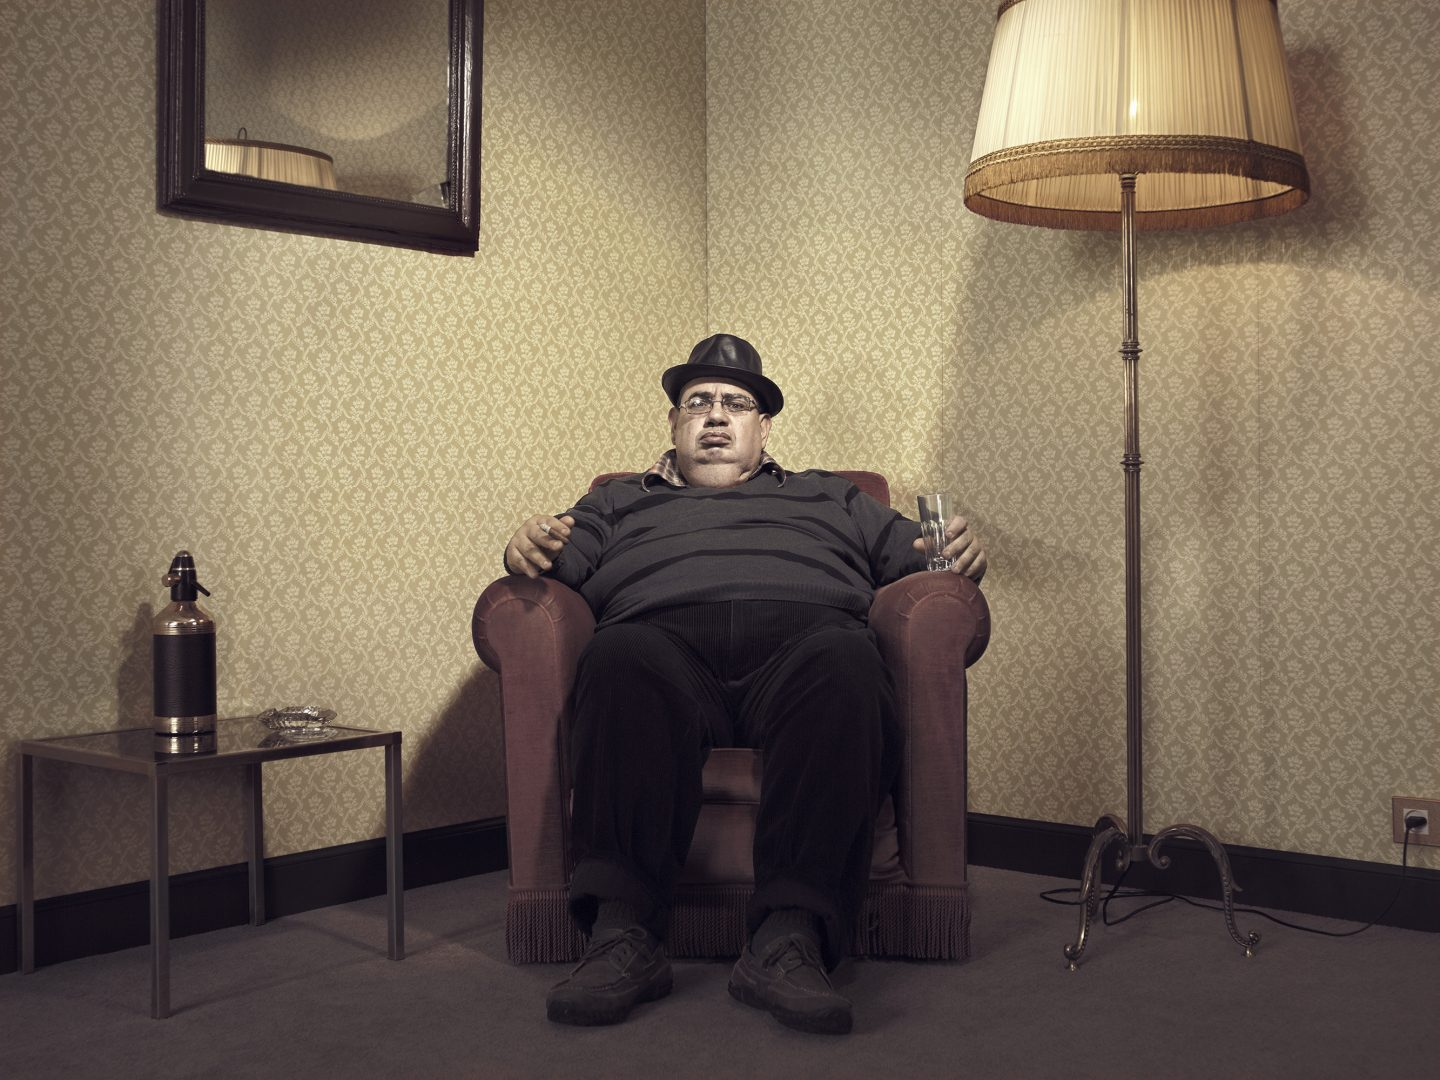 Man with hat sitting in armchair in room 42 by Stefan Rappo